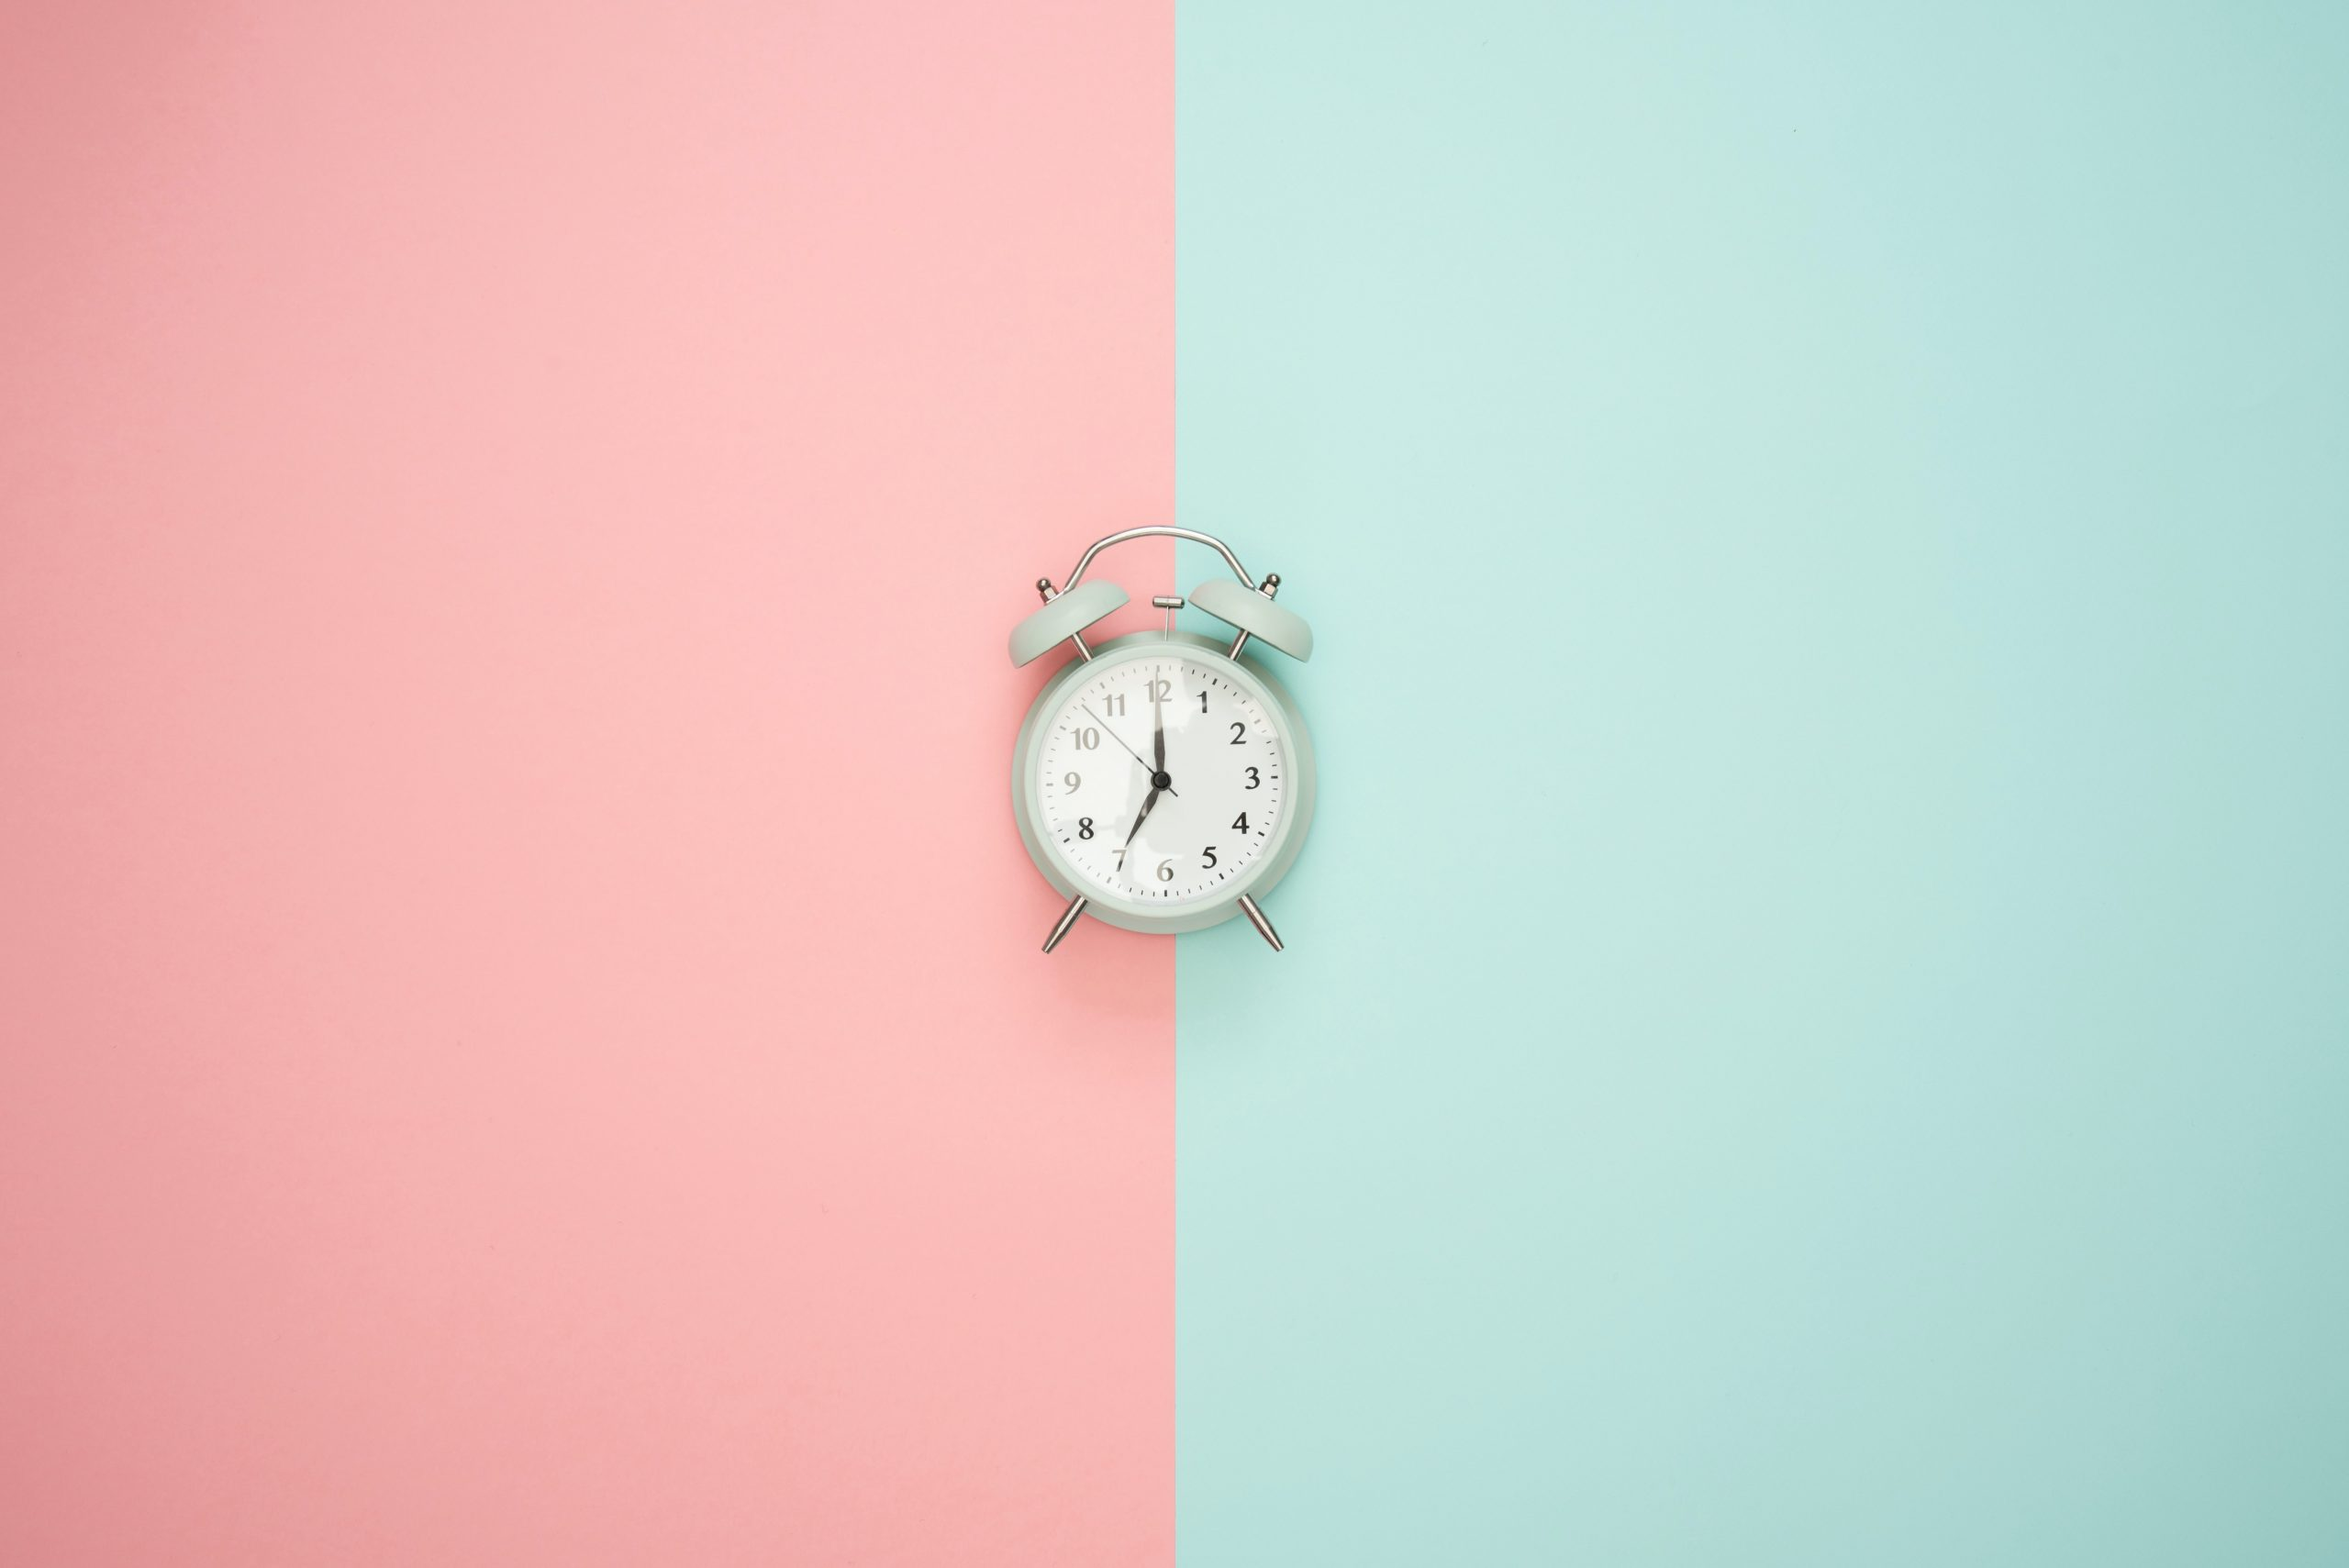 snooze alarm on pastel background